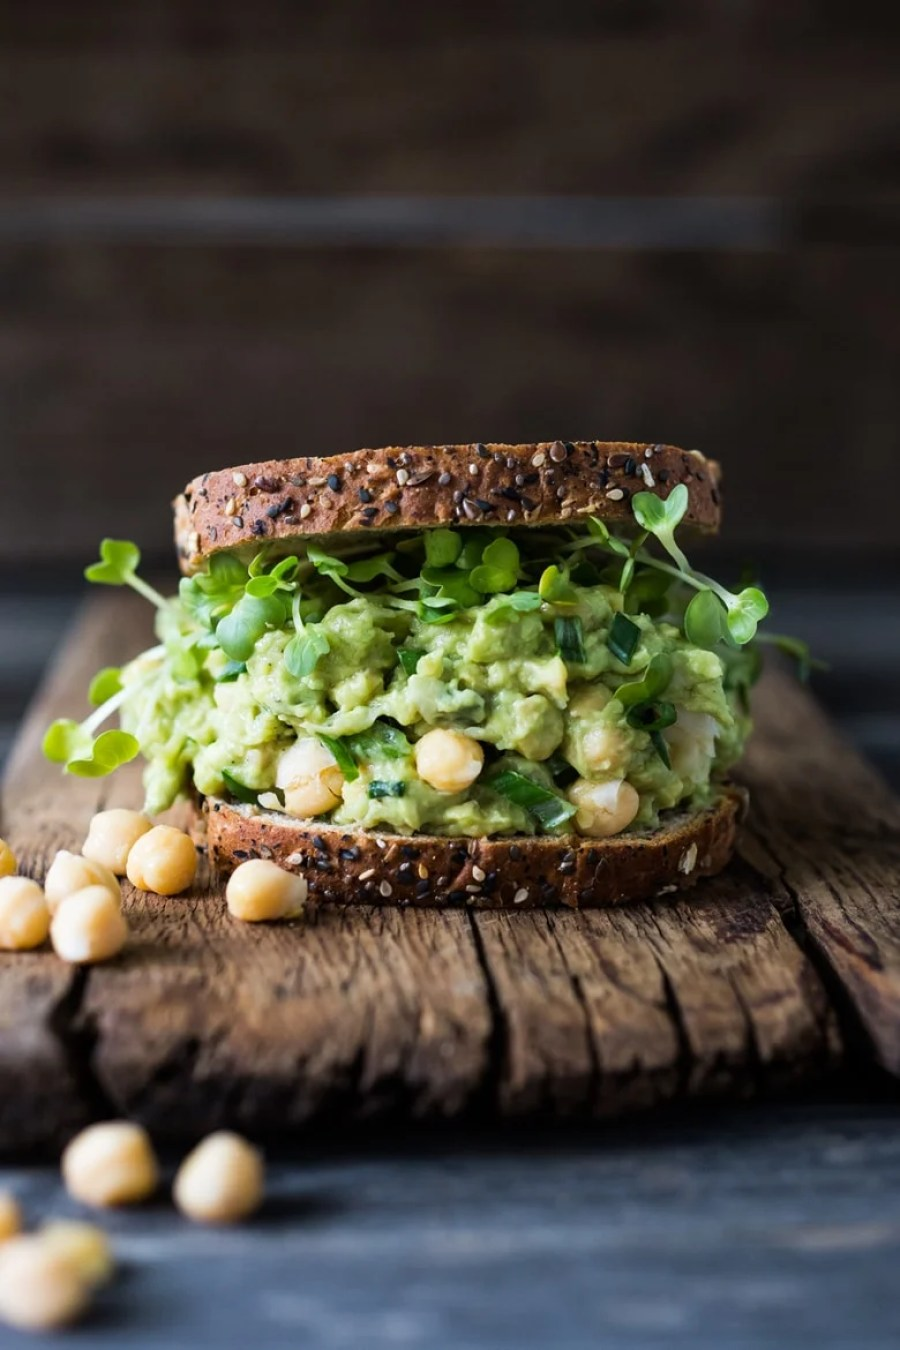 This Smashed Chickpea Avocado Sandwich is the BEST! Healthy ( vegan) and satisfying, it is sooooo YUMMY and can be made in 5-10 minutes! So EASY!